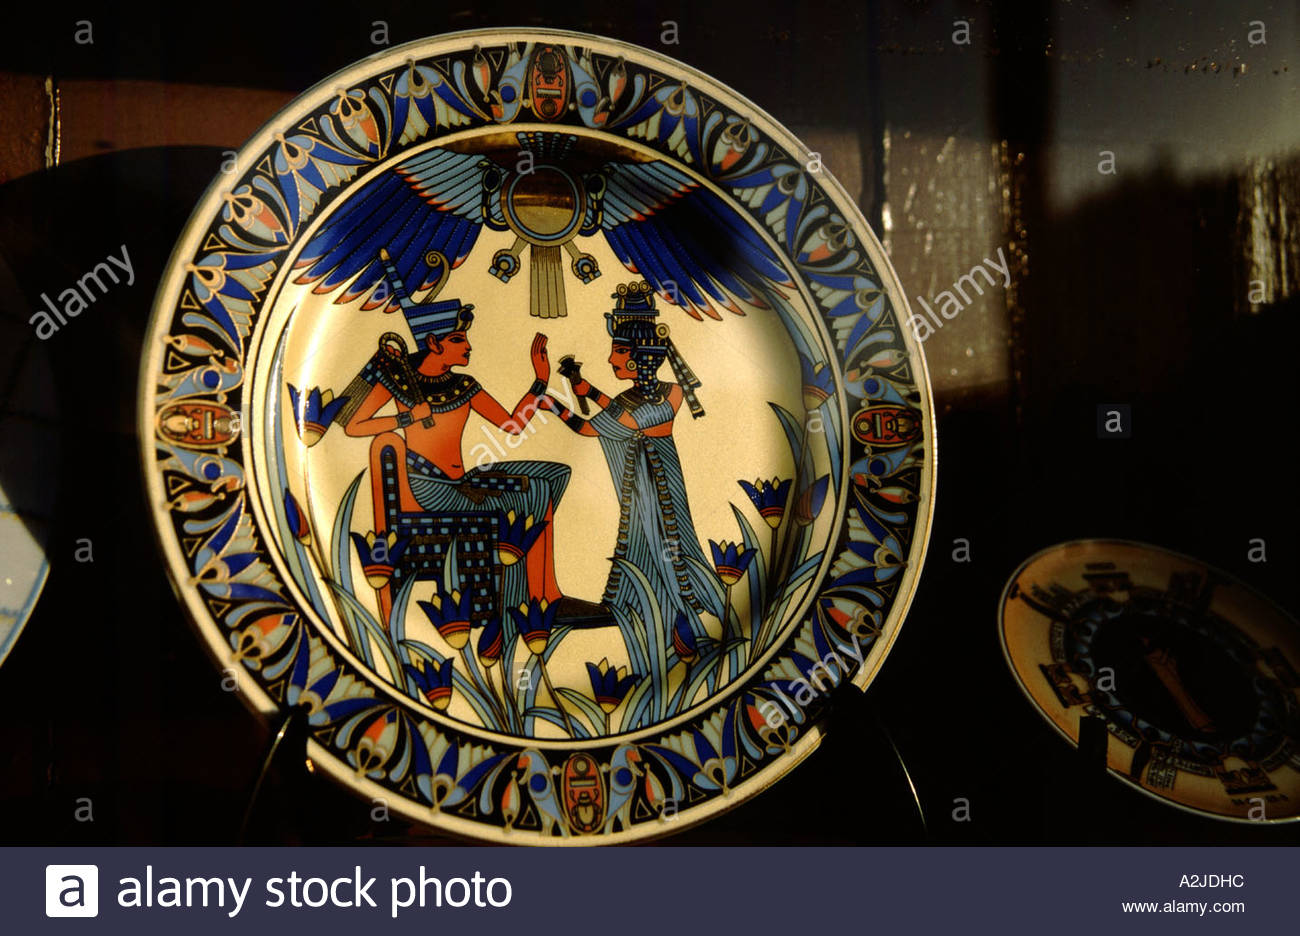 Africa - Egypt - Luxor - Egyptian plate on display in Luxor store window - Stock Image